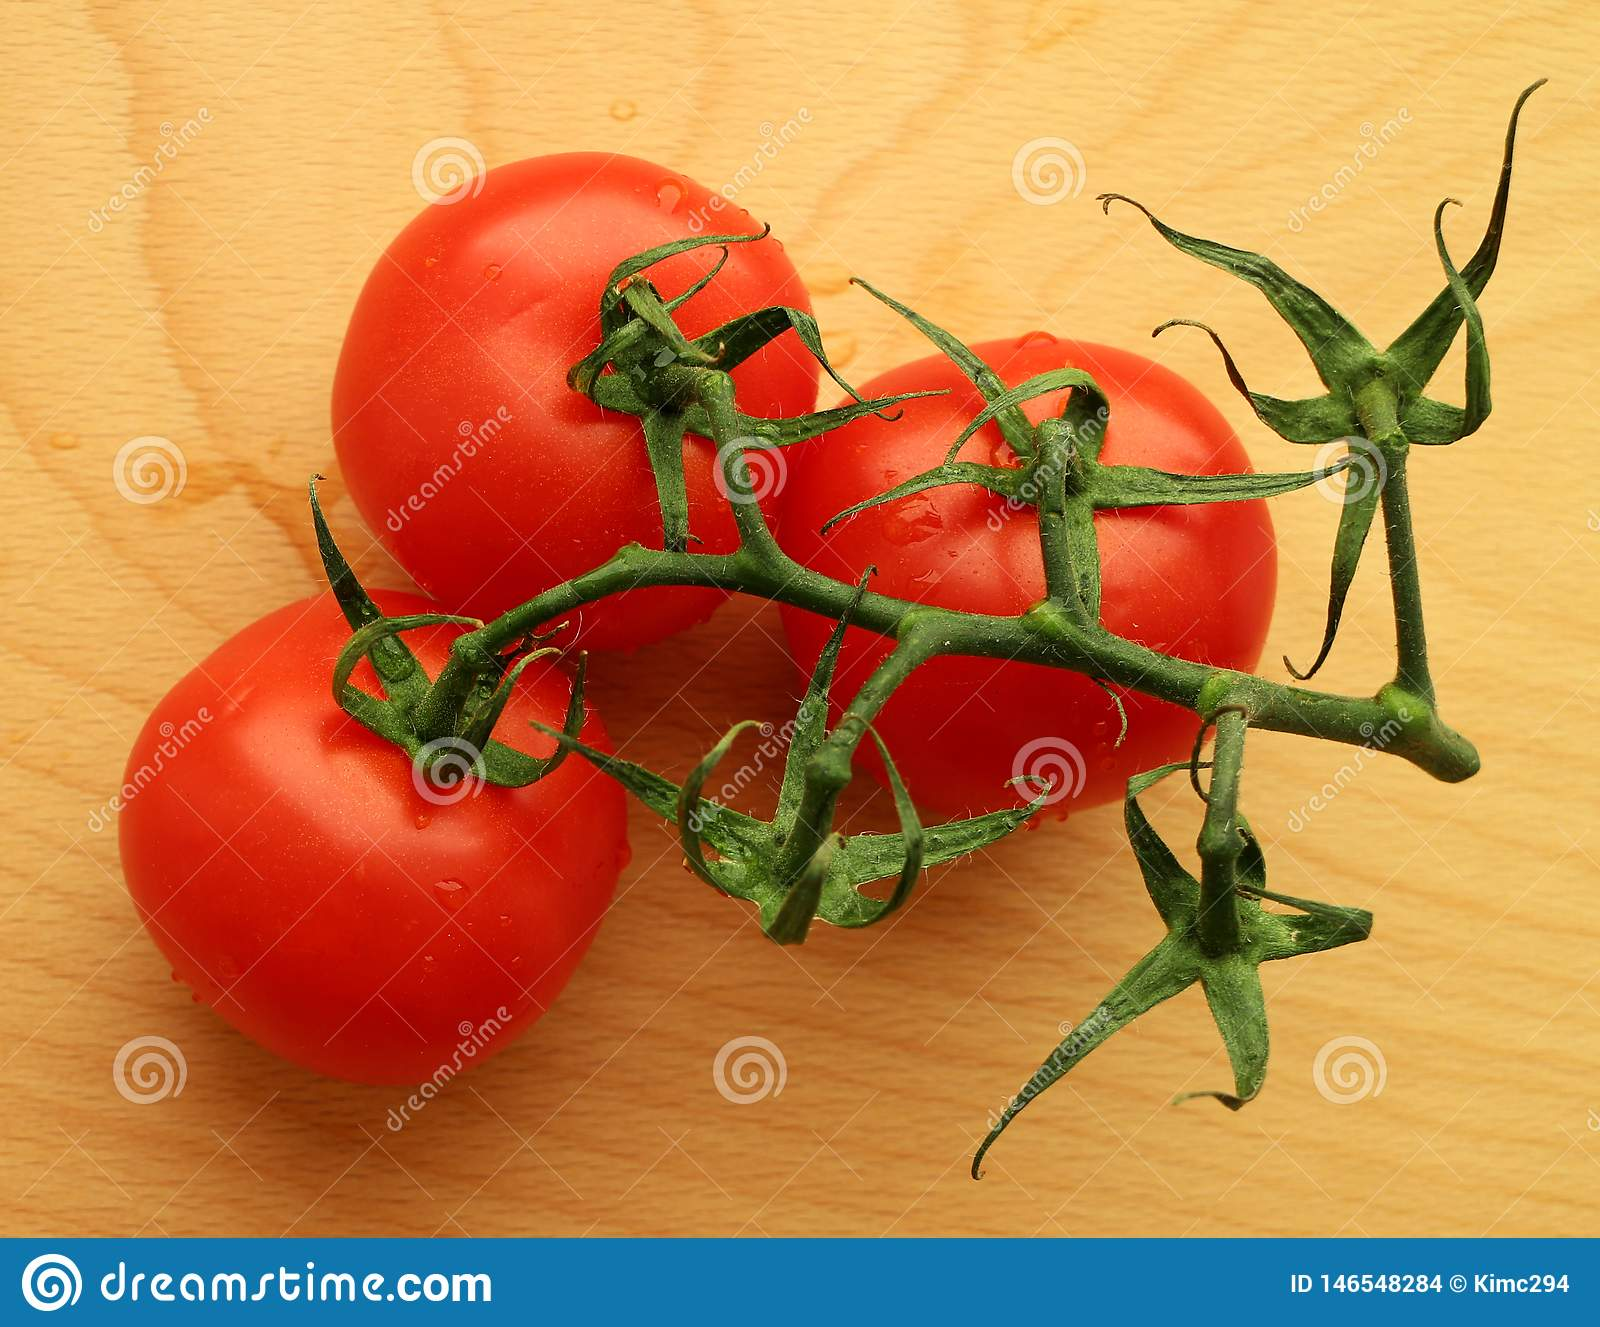 Three tomatoes on a twig on a wooden cutting board.